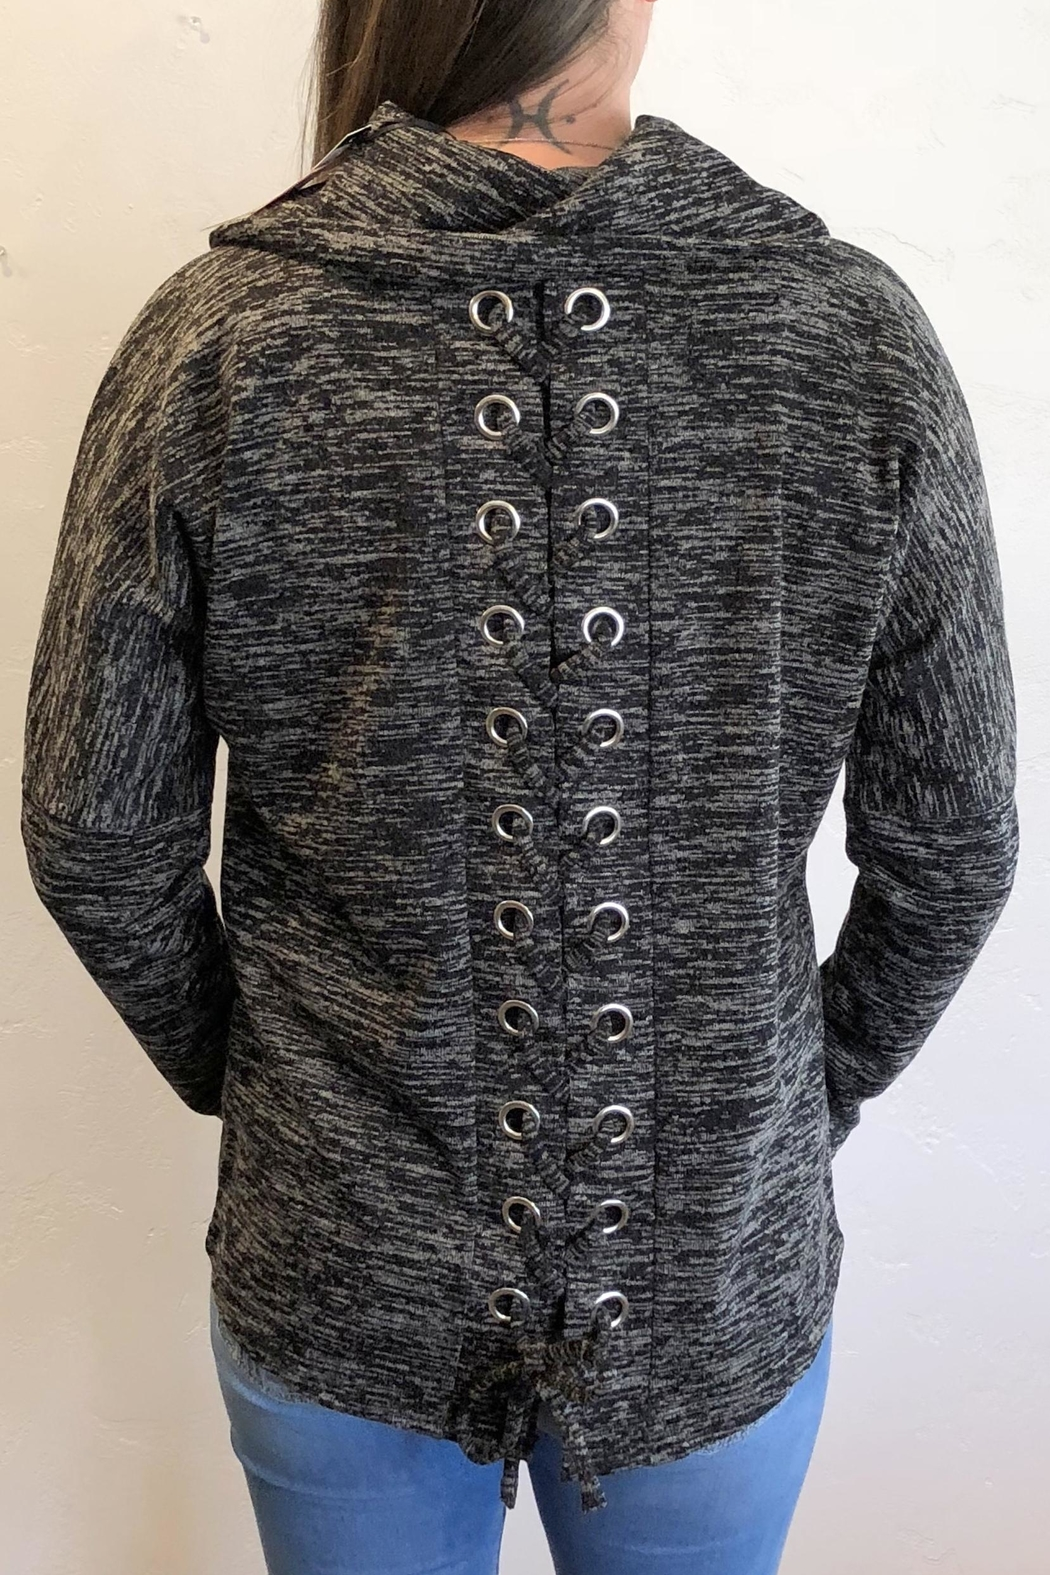 Charlie B. Lace-Up Cowl Sweater - Front Full Image